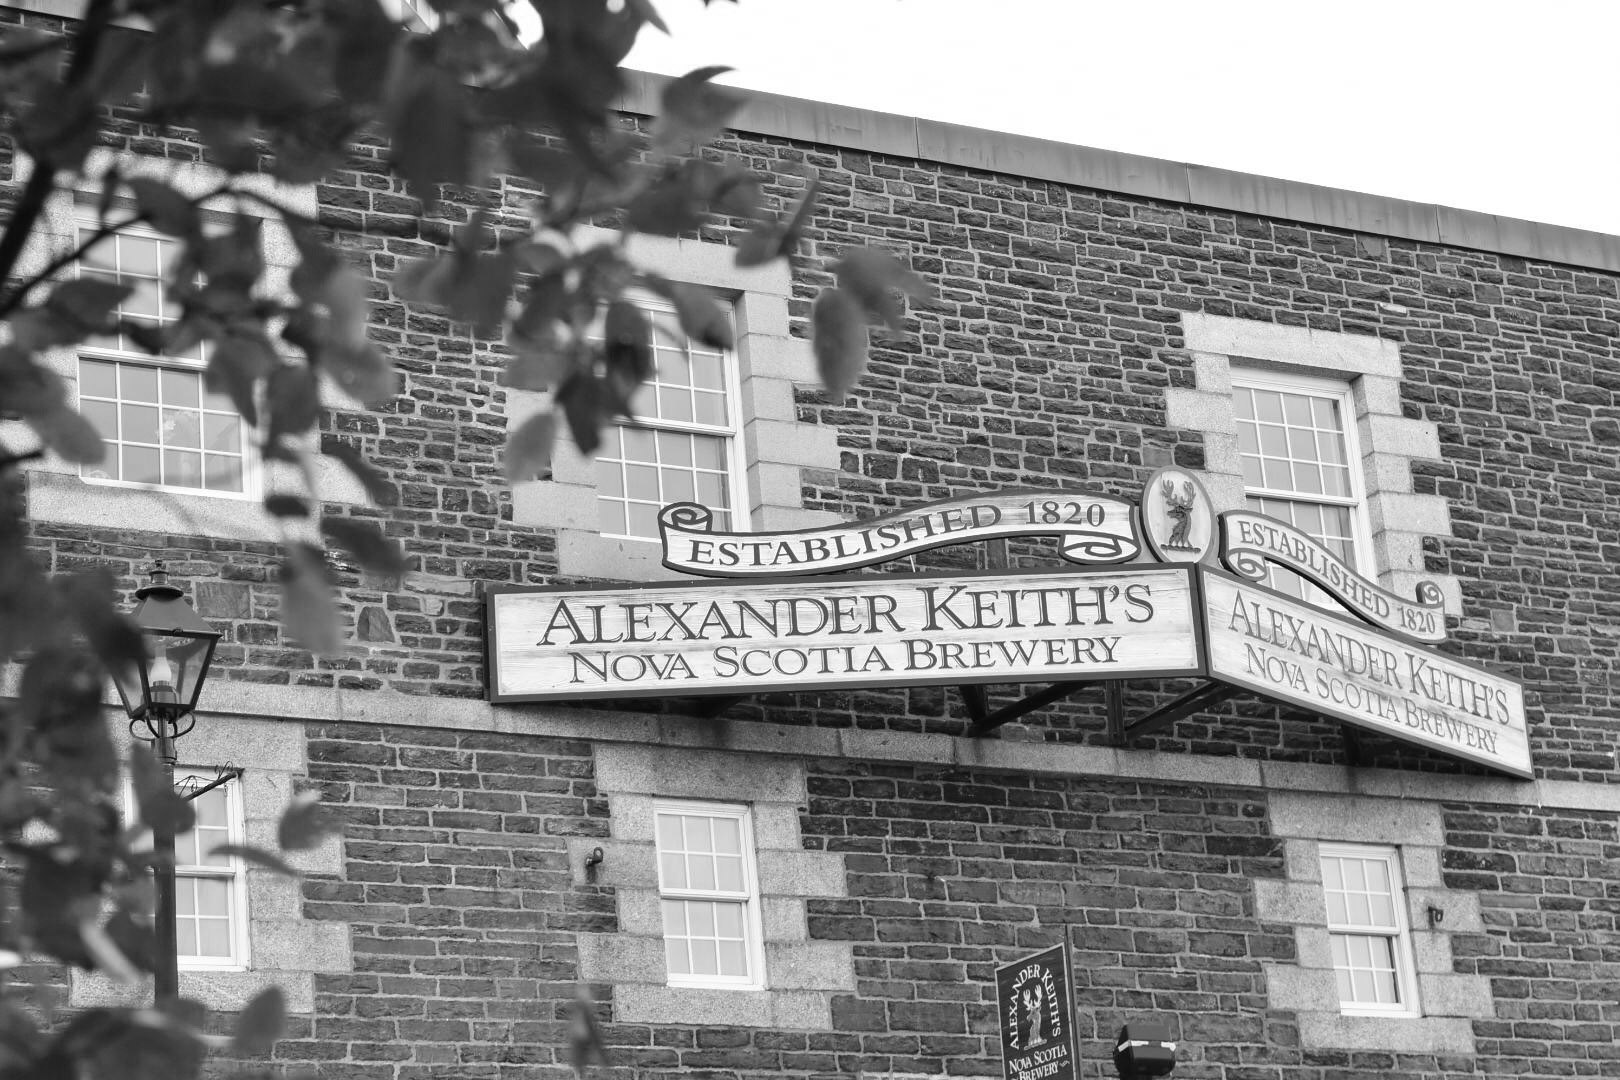 The entrance to Alexander Keith's Brewery.